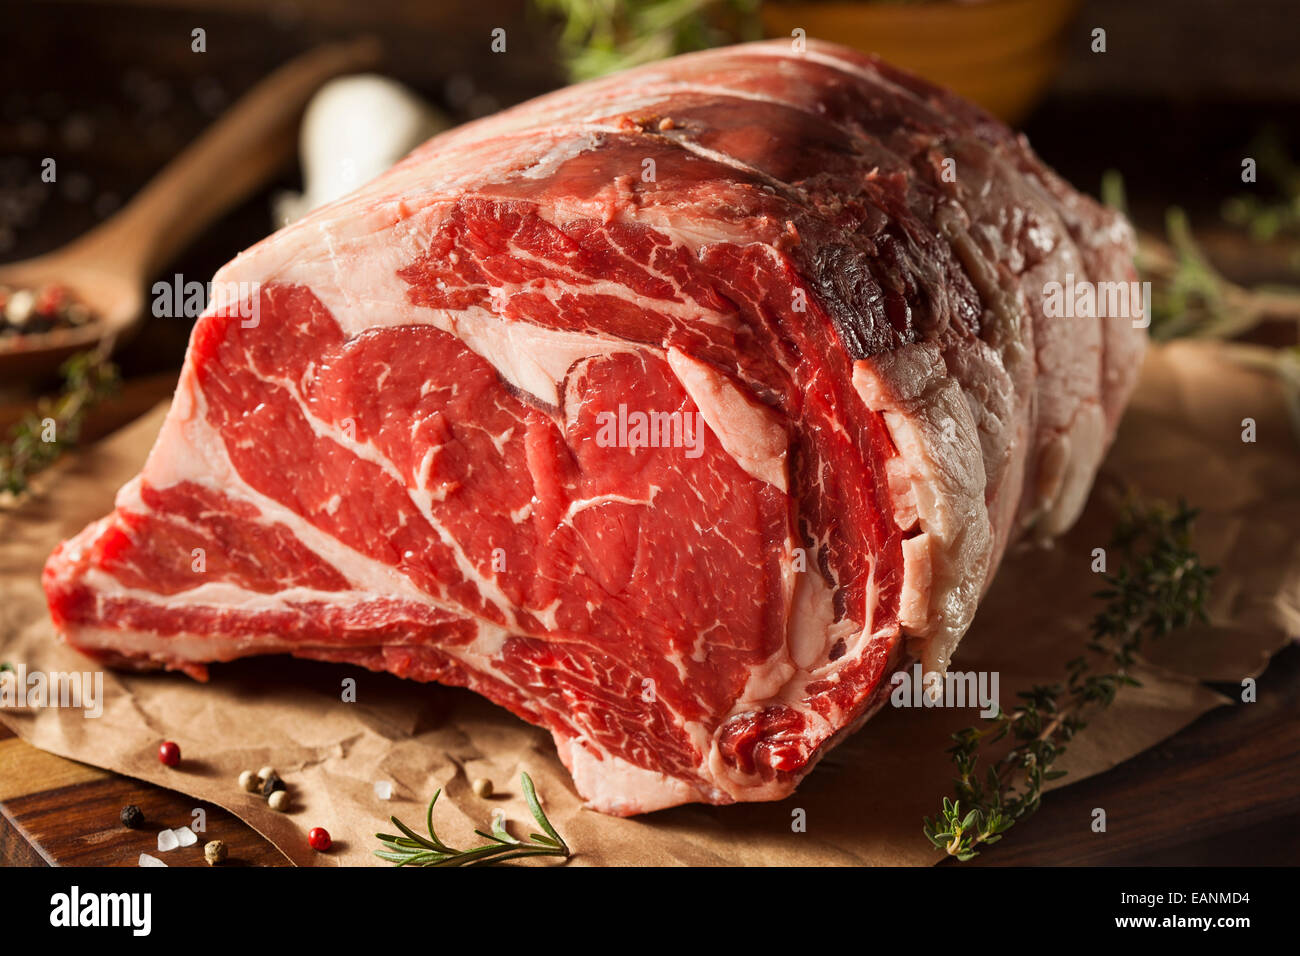 Raw Grass Fed Prime Rib Meat with Herbs and Spices - Stock Image